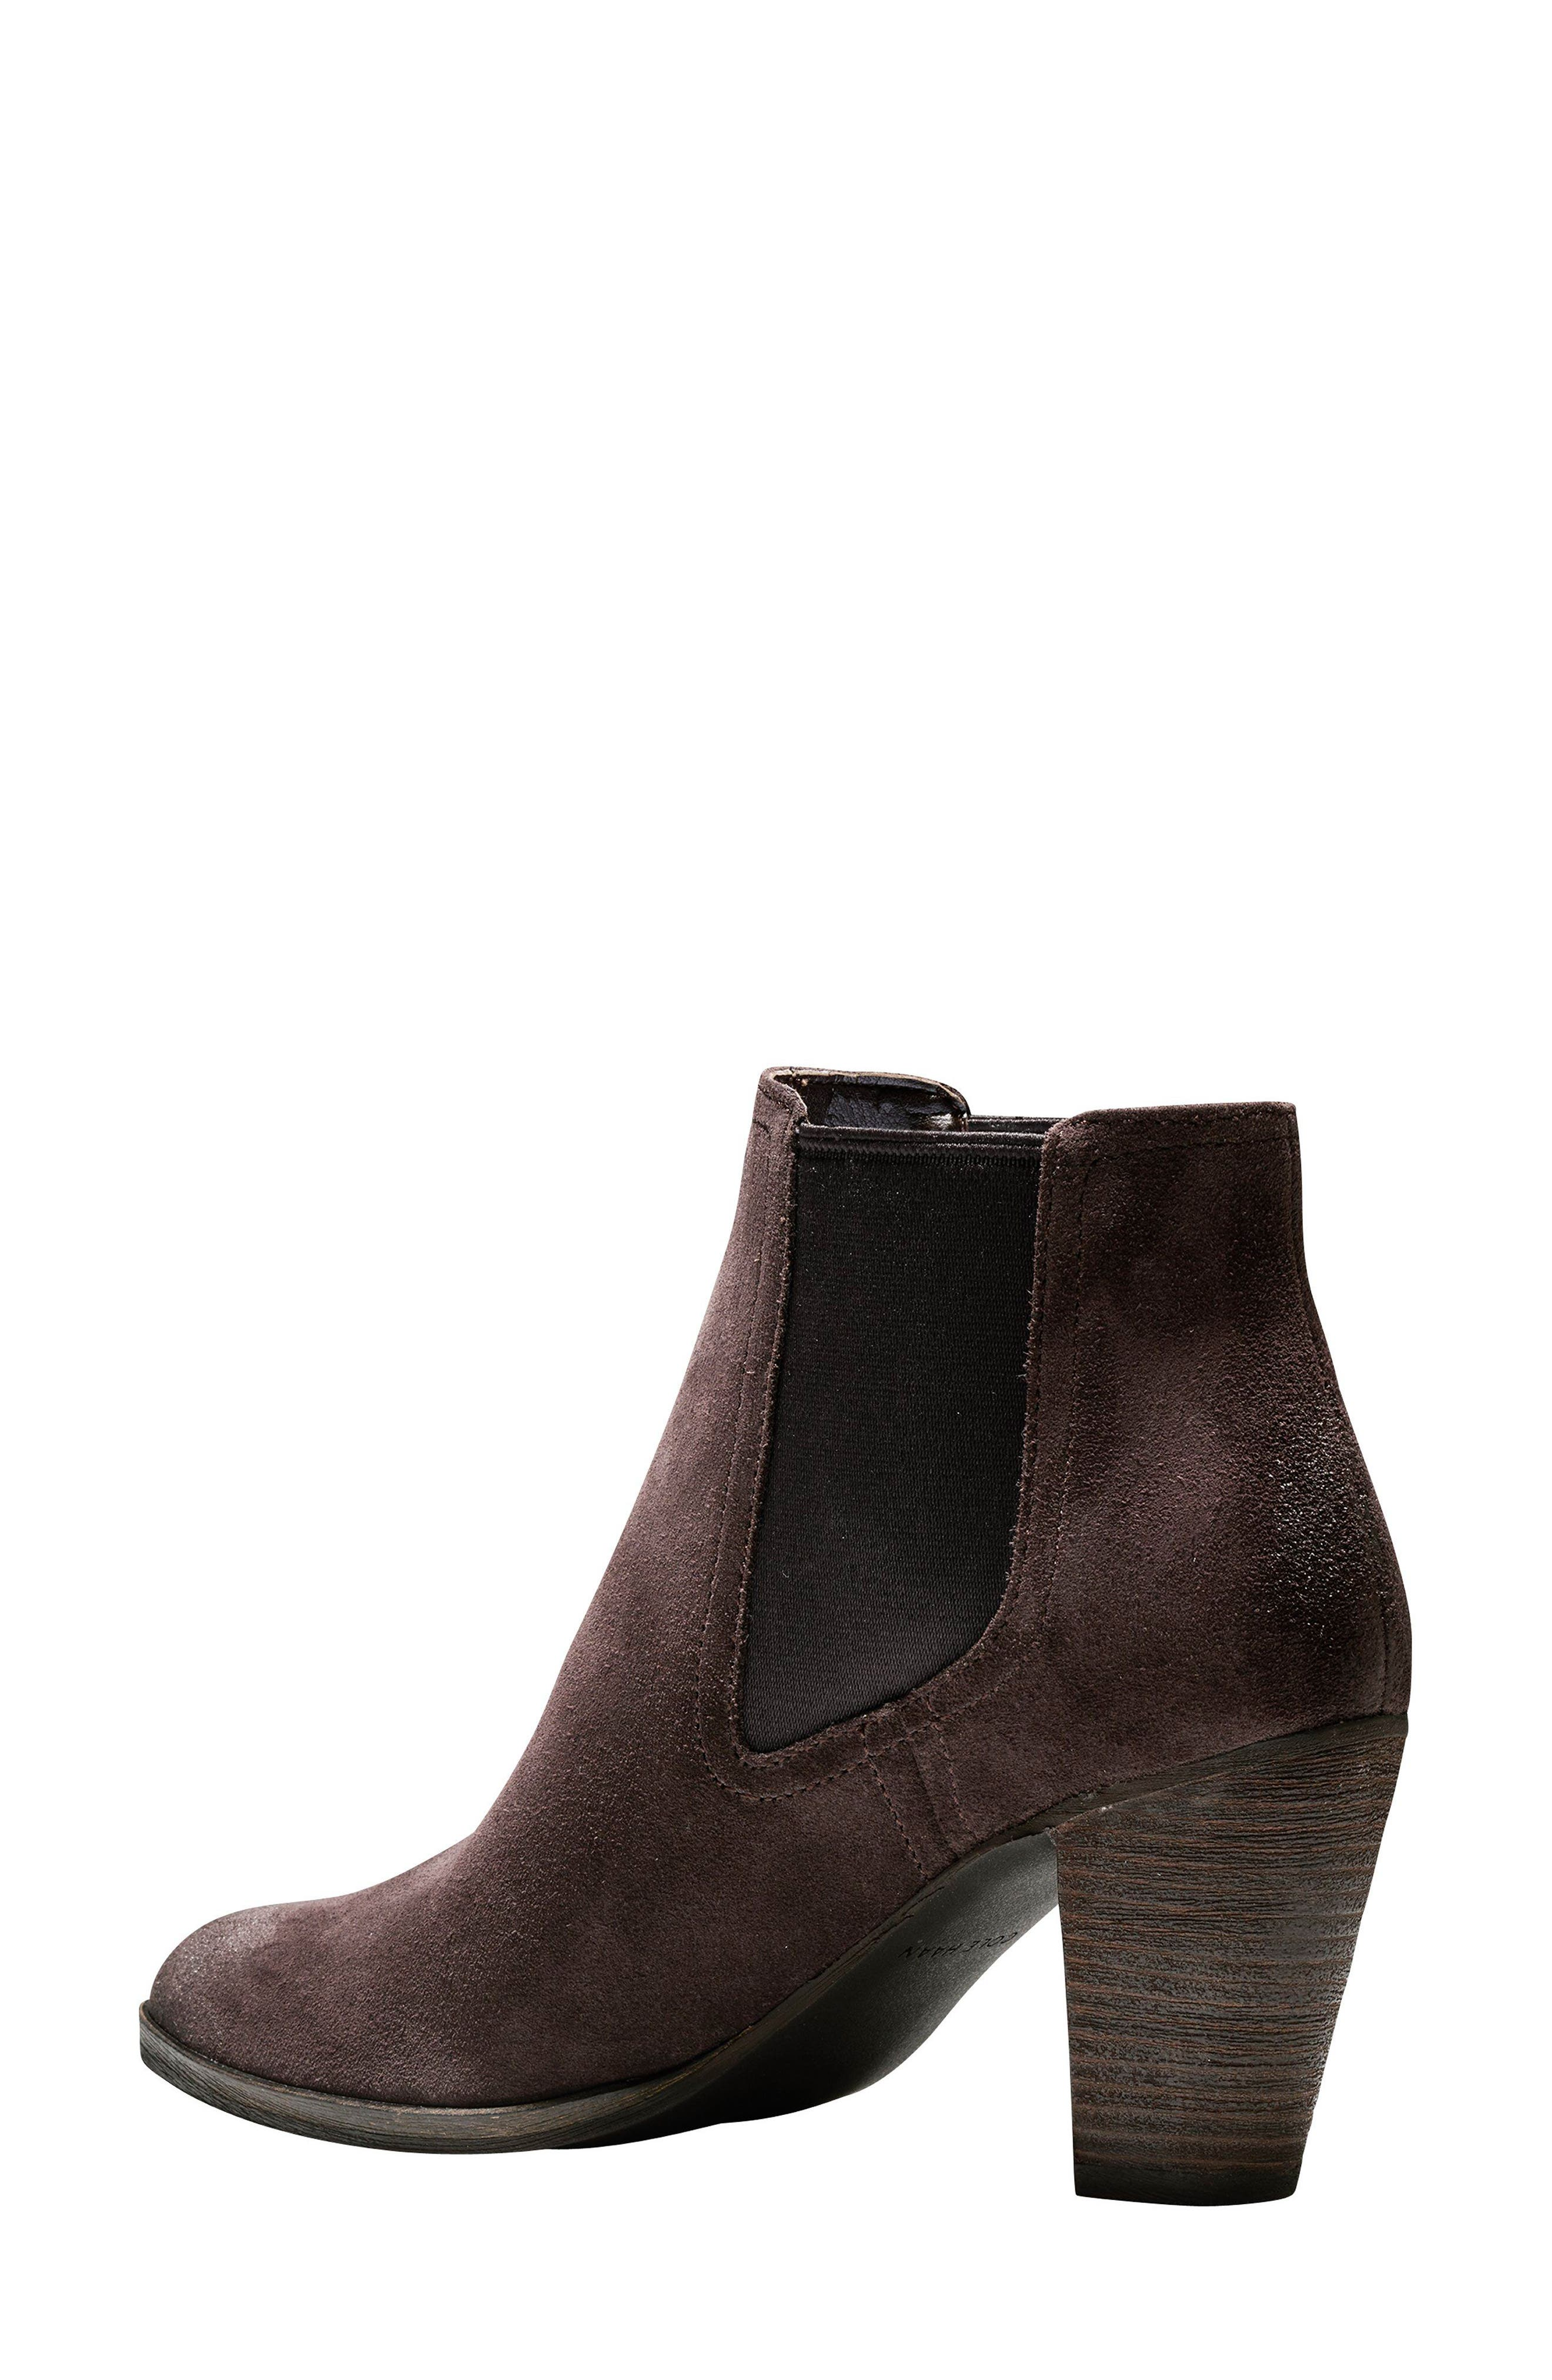 Hayes Chelsea Boot,                             Alternate thumbnail 2, color,                             Java Suede